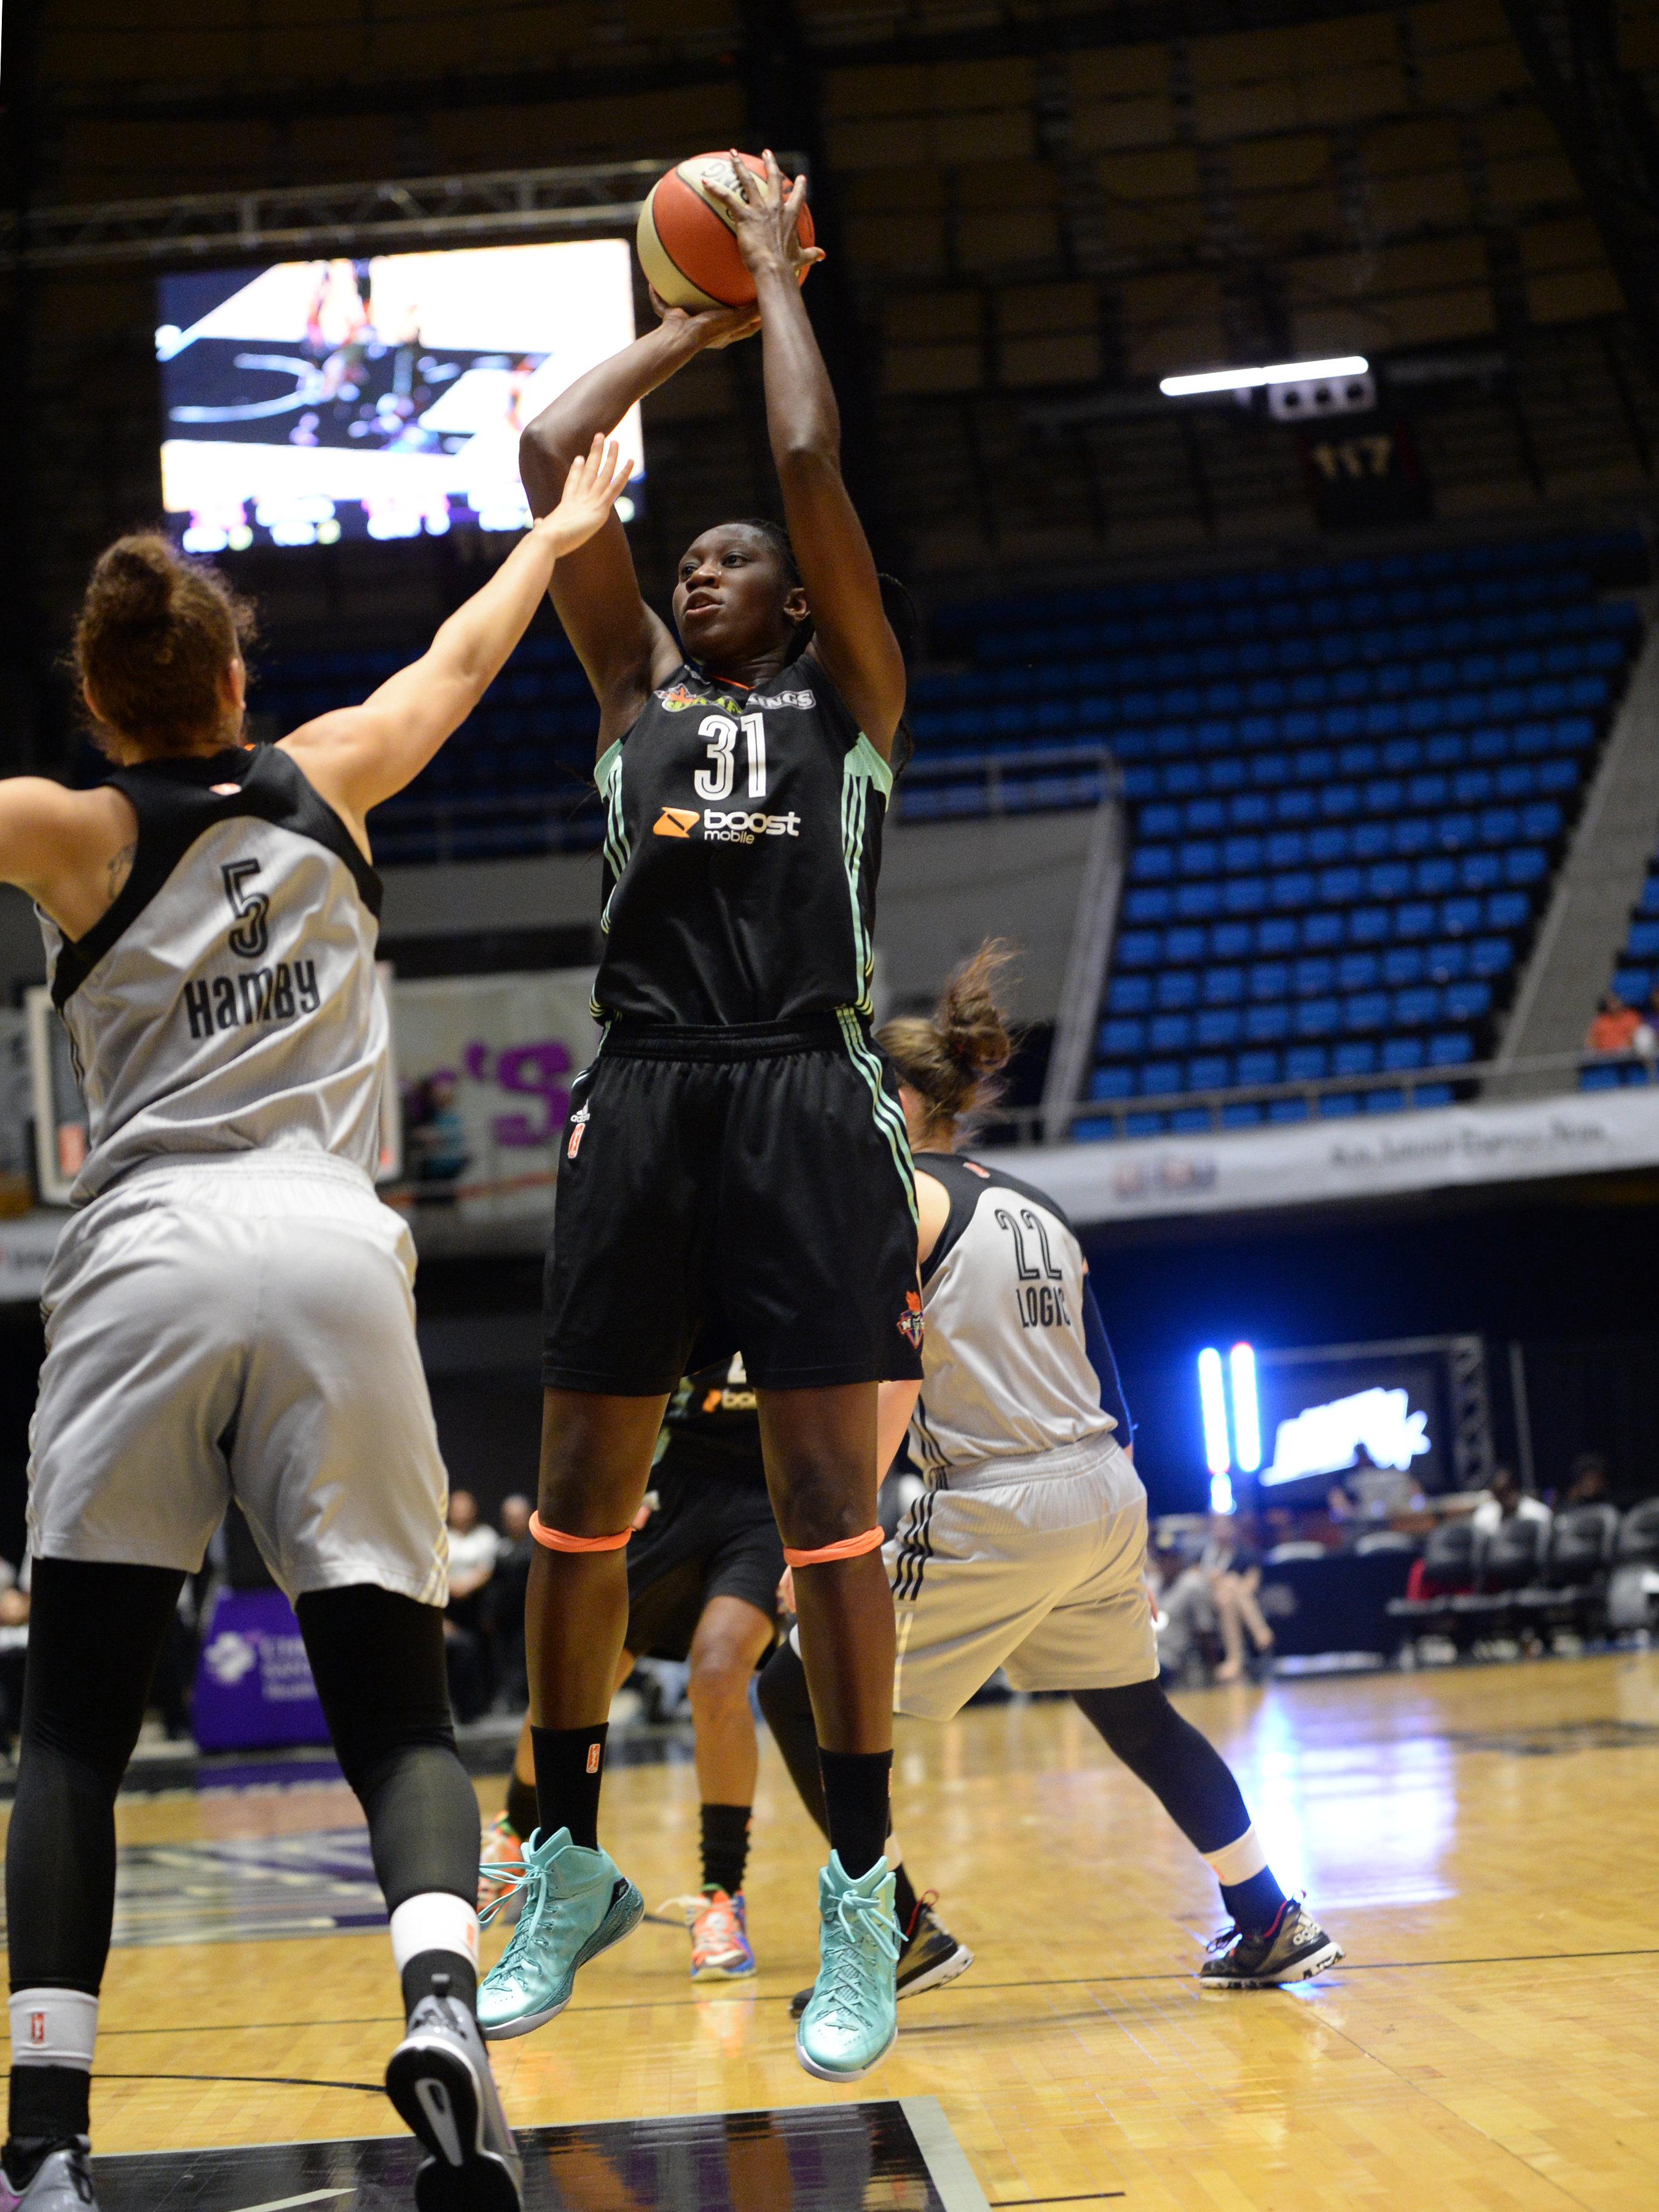 SAN ANTONIO - AUGUST 19: Tina Charles #31 of the New York Liberty shoots the ball against the San Antonio Stars on August 19, 2015 at the Freeman Coliseum in San Antonio, Texas.